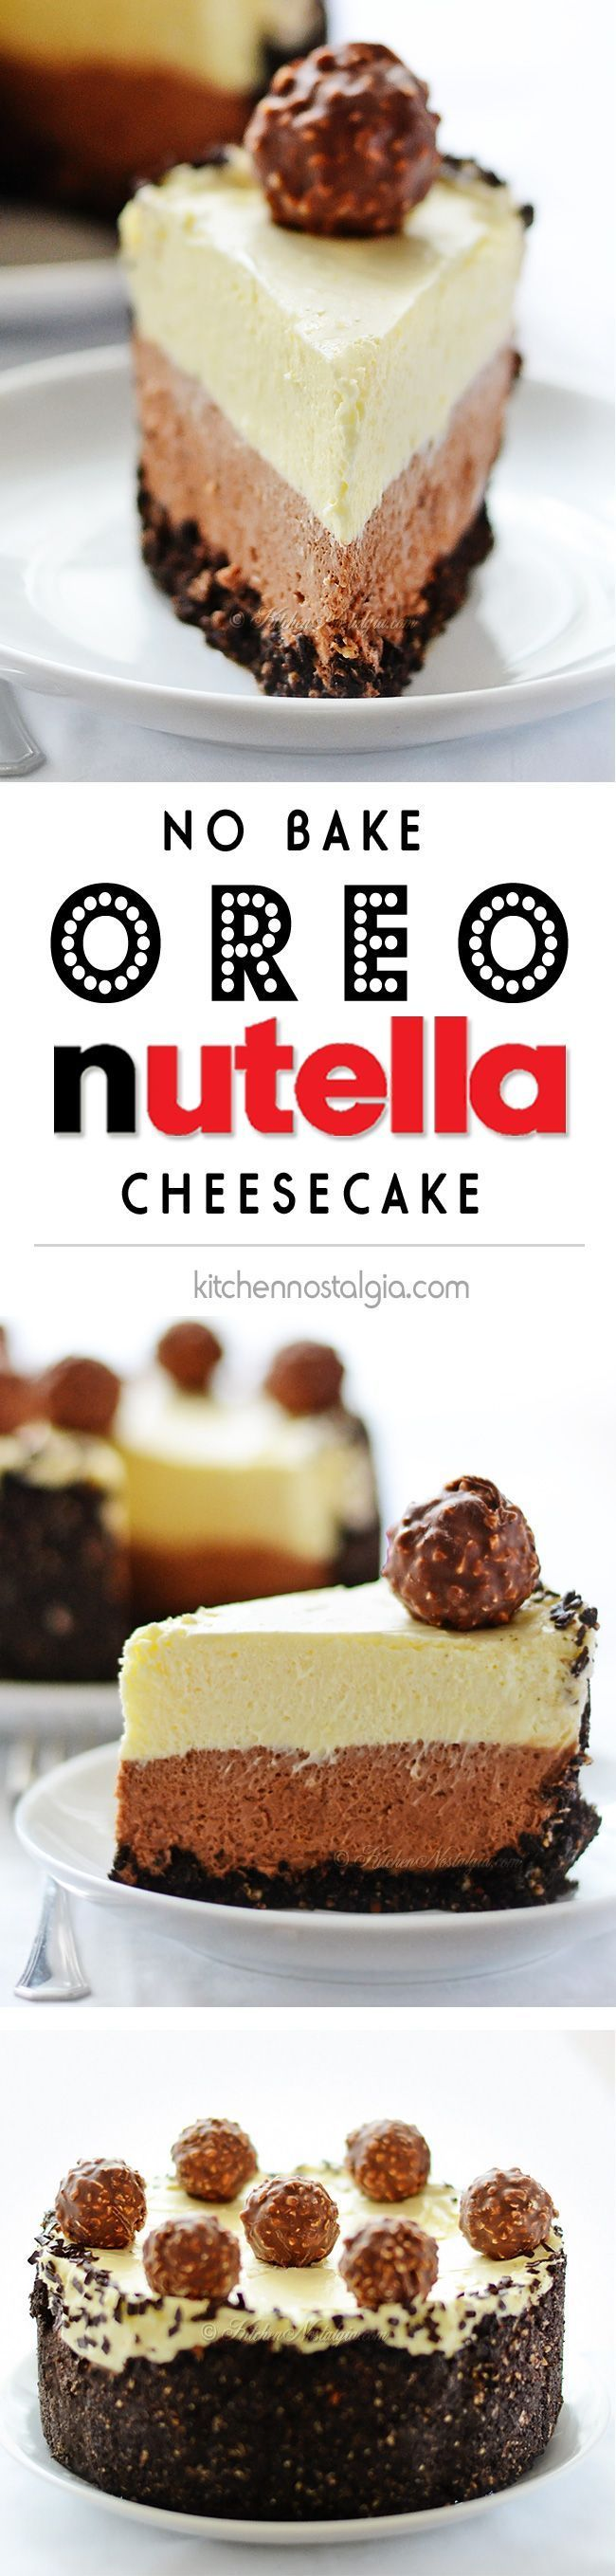 Nutella Oreo Cheesecake - divine no bake dessert with Oreo cookie crust, Nutella cheesecake layers and decorated with Ferrero Rocher chocolate candies - kitchennostalgia.com